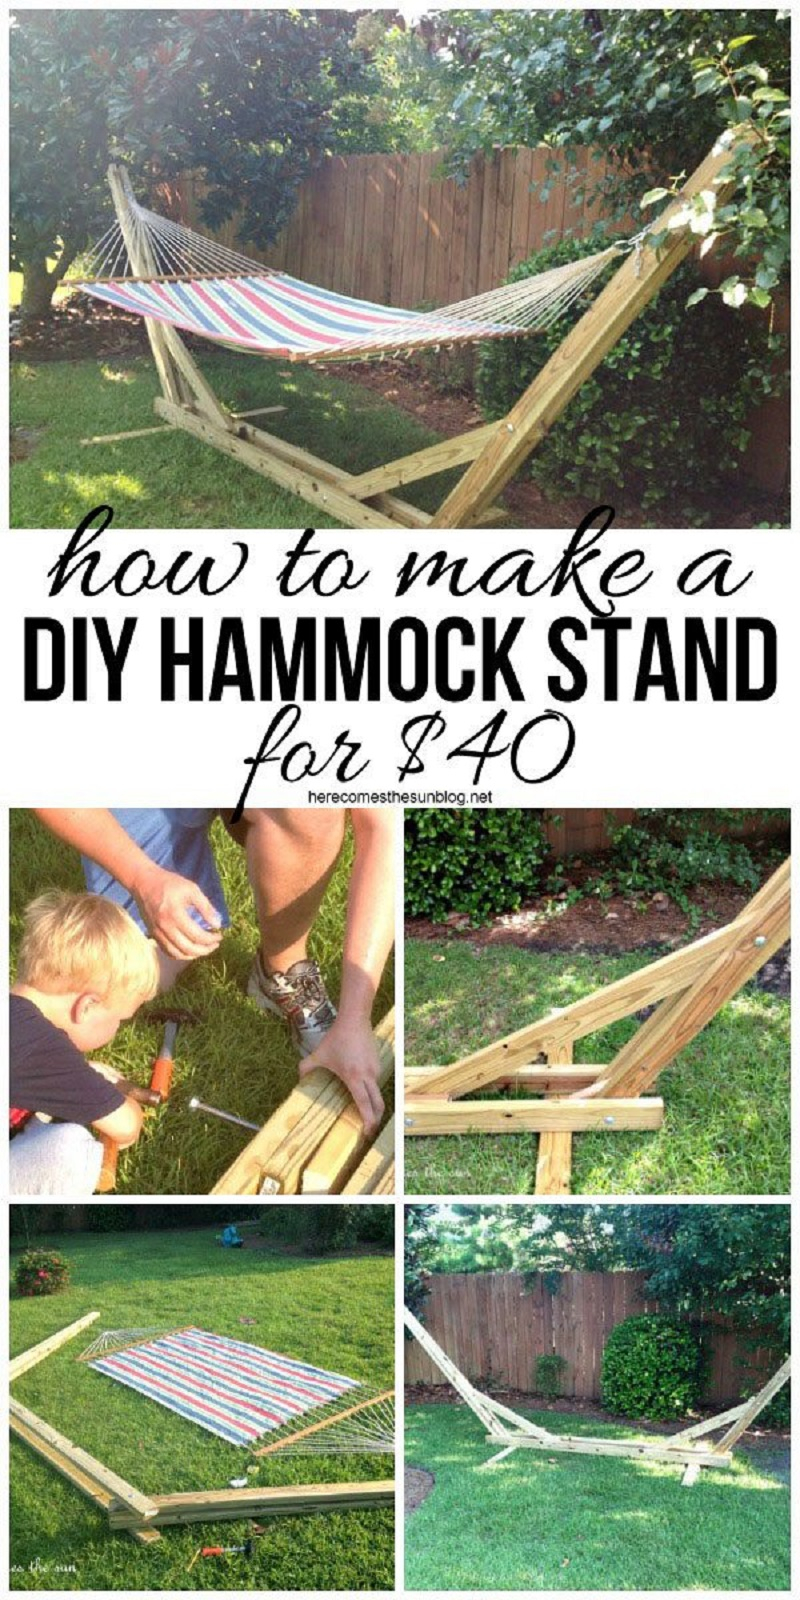 Diy crafter's hammock stand